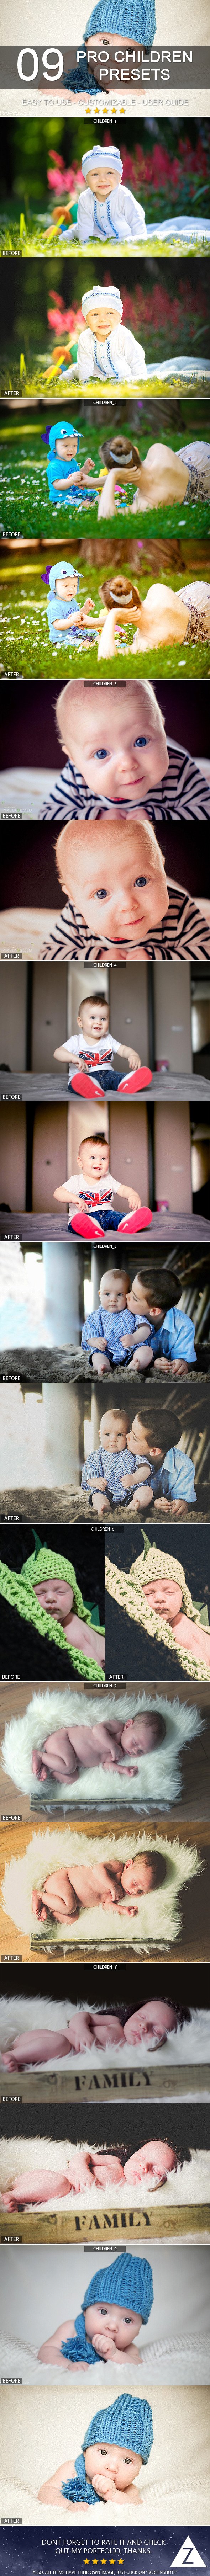 9 Pro Children Presets - Portrait Lightroom Presets